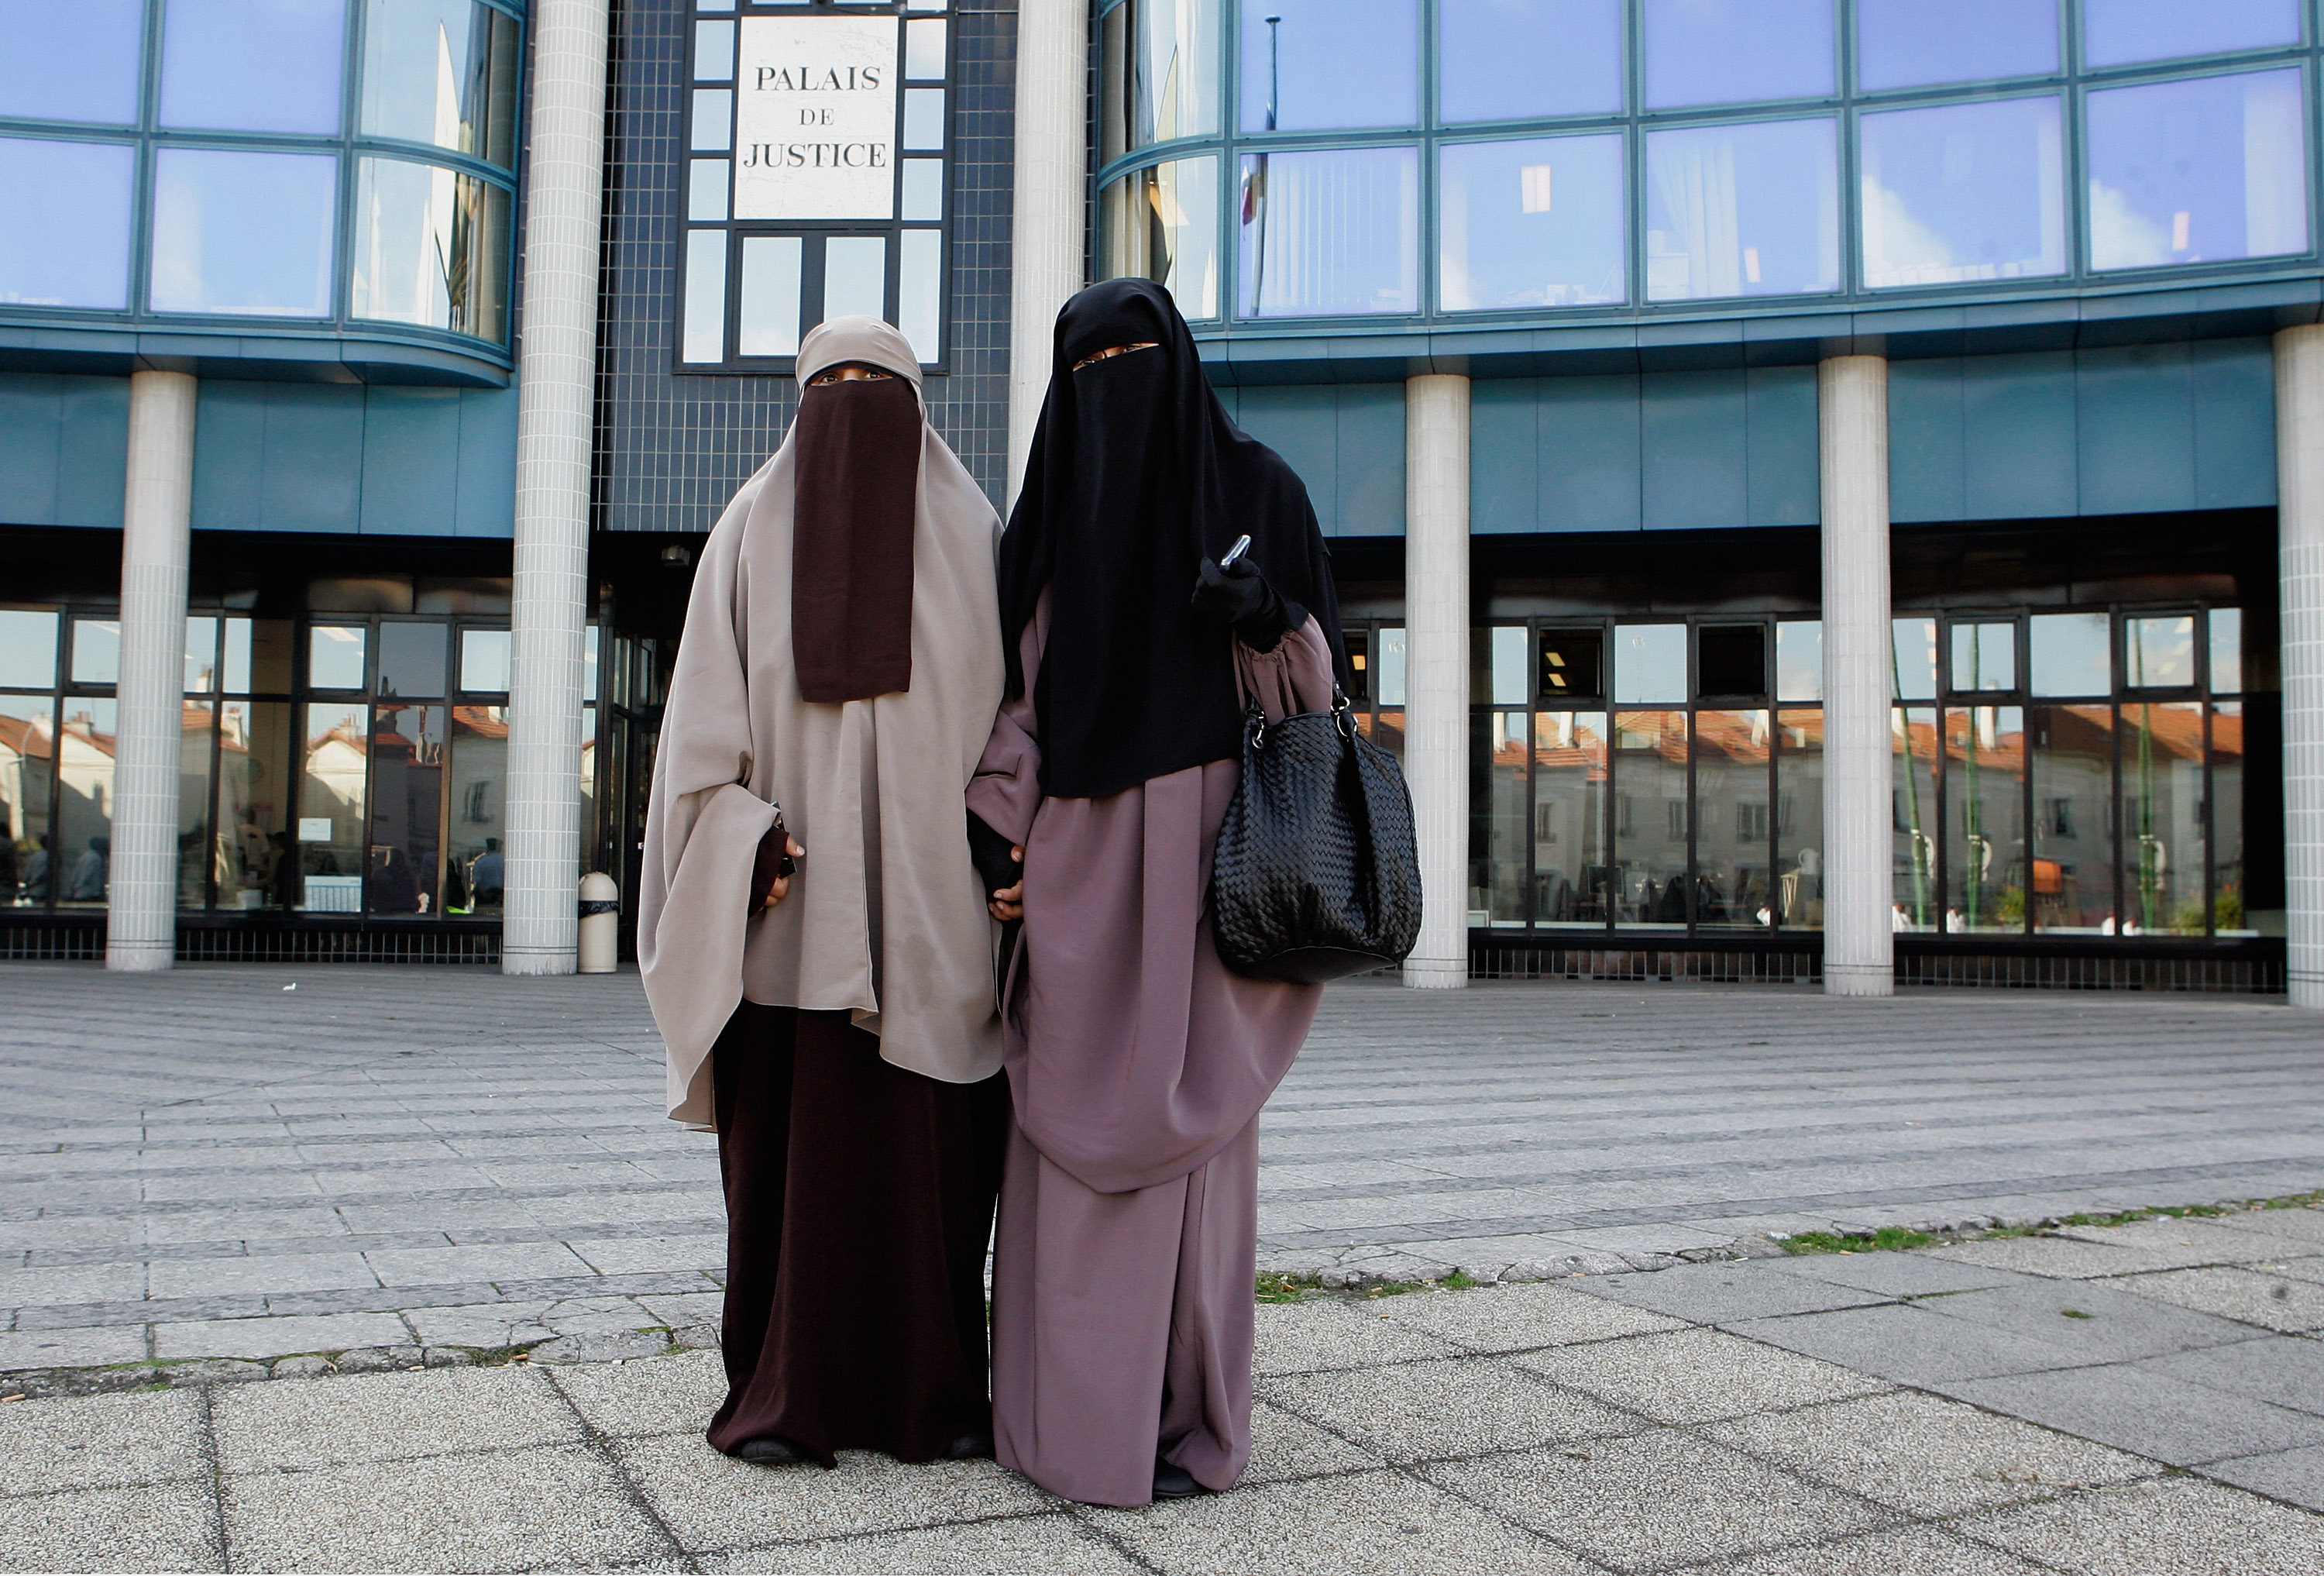 Hind Ahmas, 32, (R) stands with Kenza Drider, 32, as she leaves the court after being convicted as the first woman wearing a niqab after France's nationwide ban on the wearing of face veils on Sept. 22, 2011 in Meaux, France.